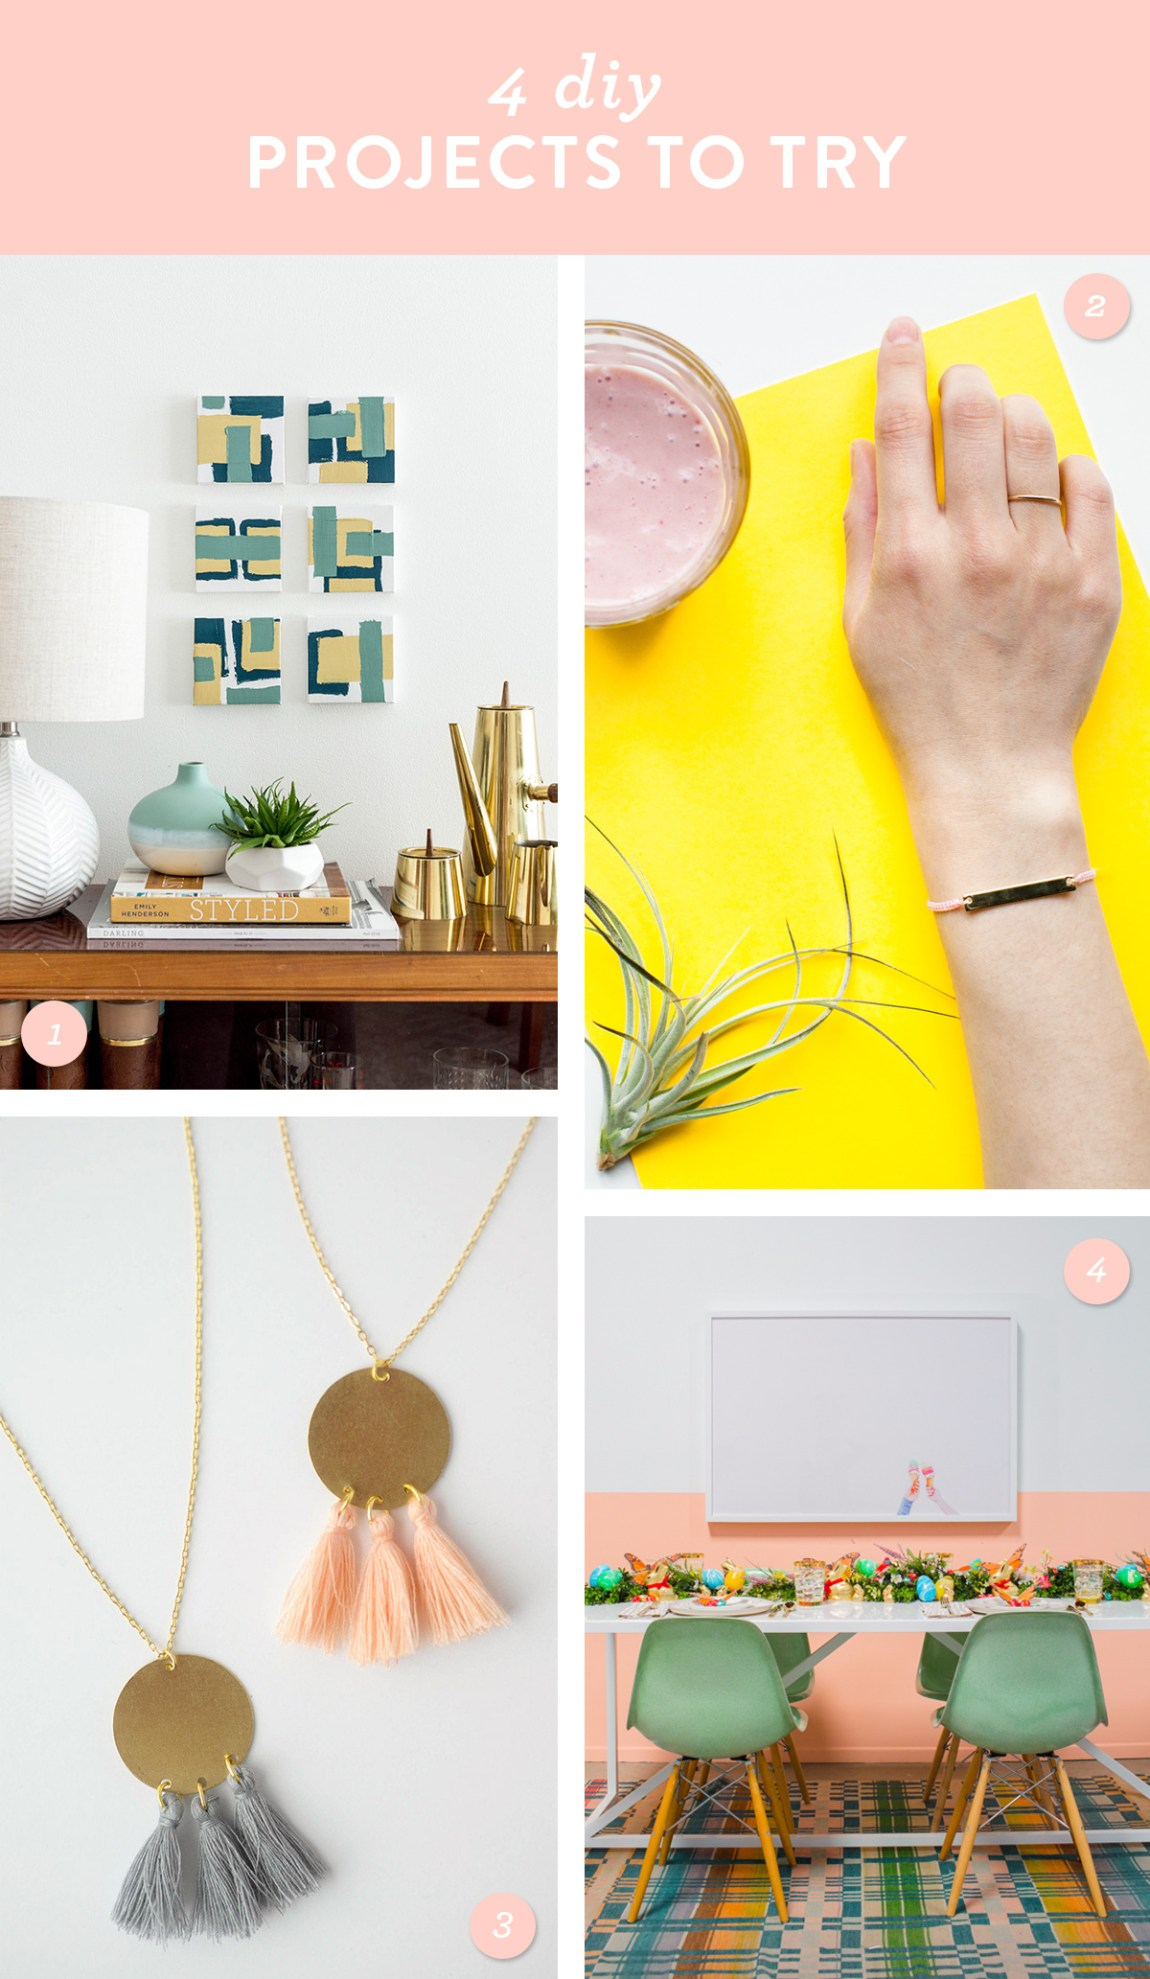 Try ones of these DIY home or jewelry projects this weekend!